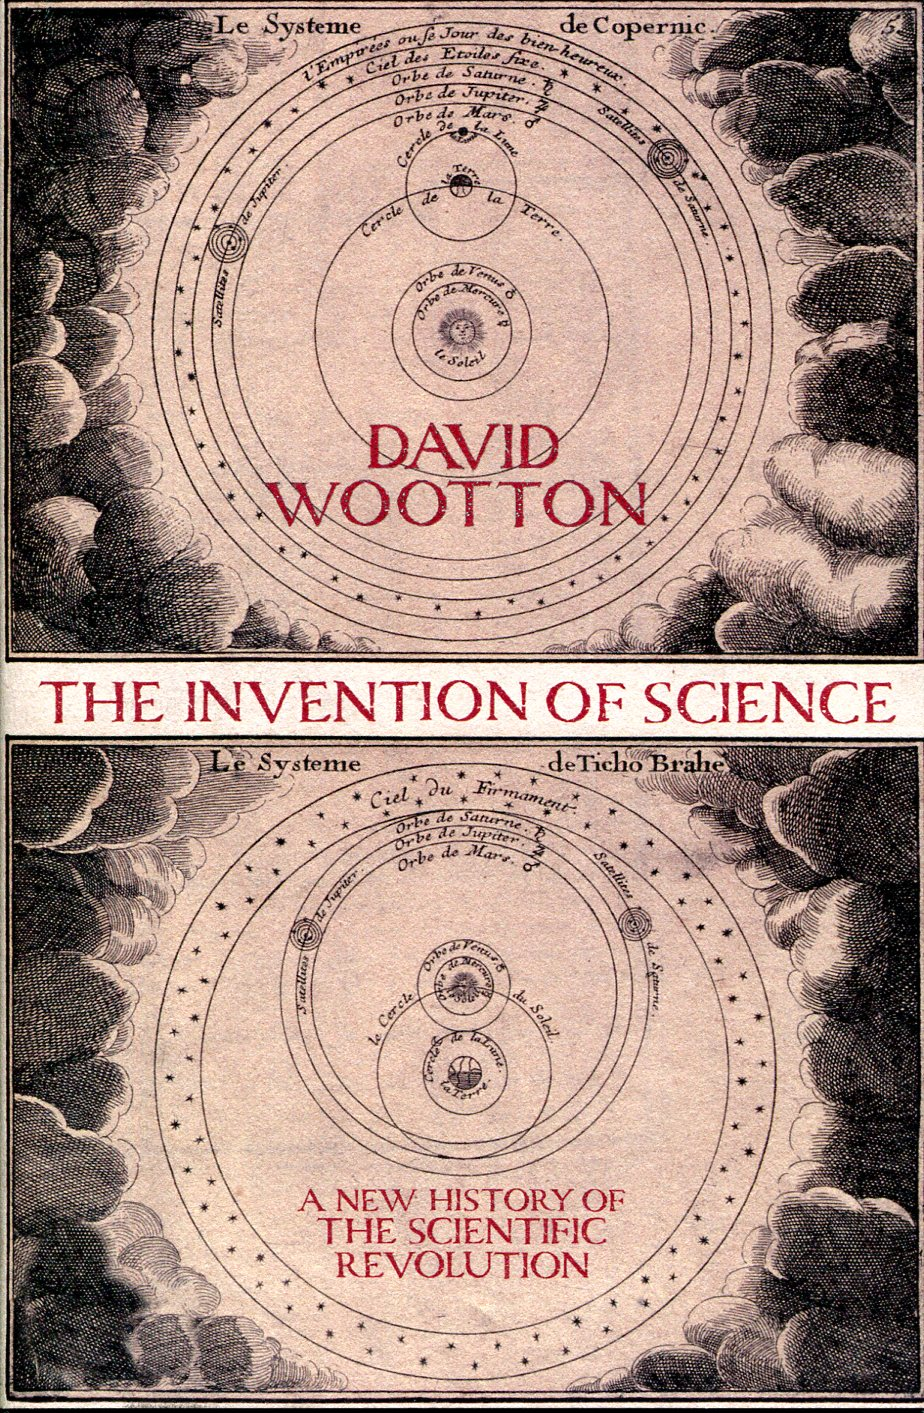 book reviews the renaissance mathematicus david wootton s just published new tome all 770 pages of it is really burning a hole in my conscience i would love to drop all my other commitments and